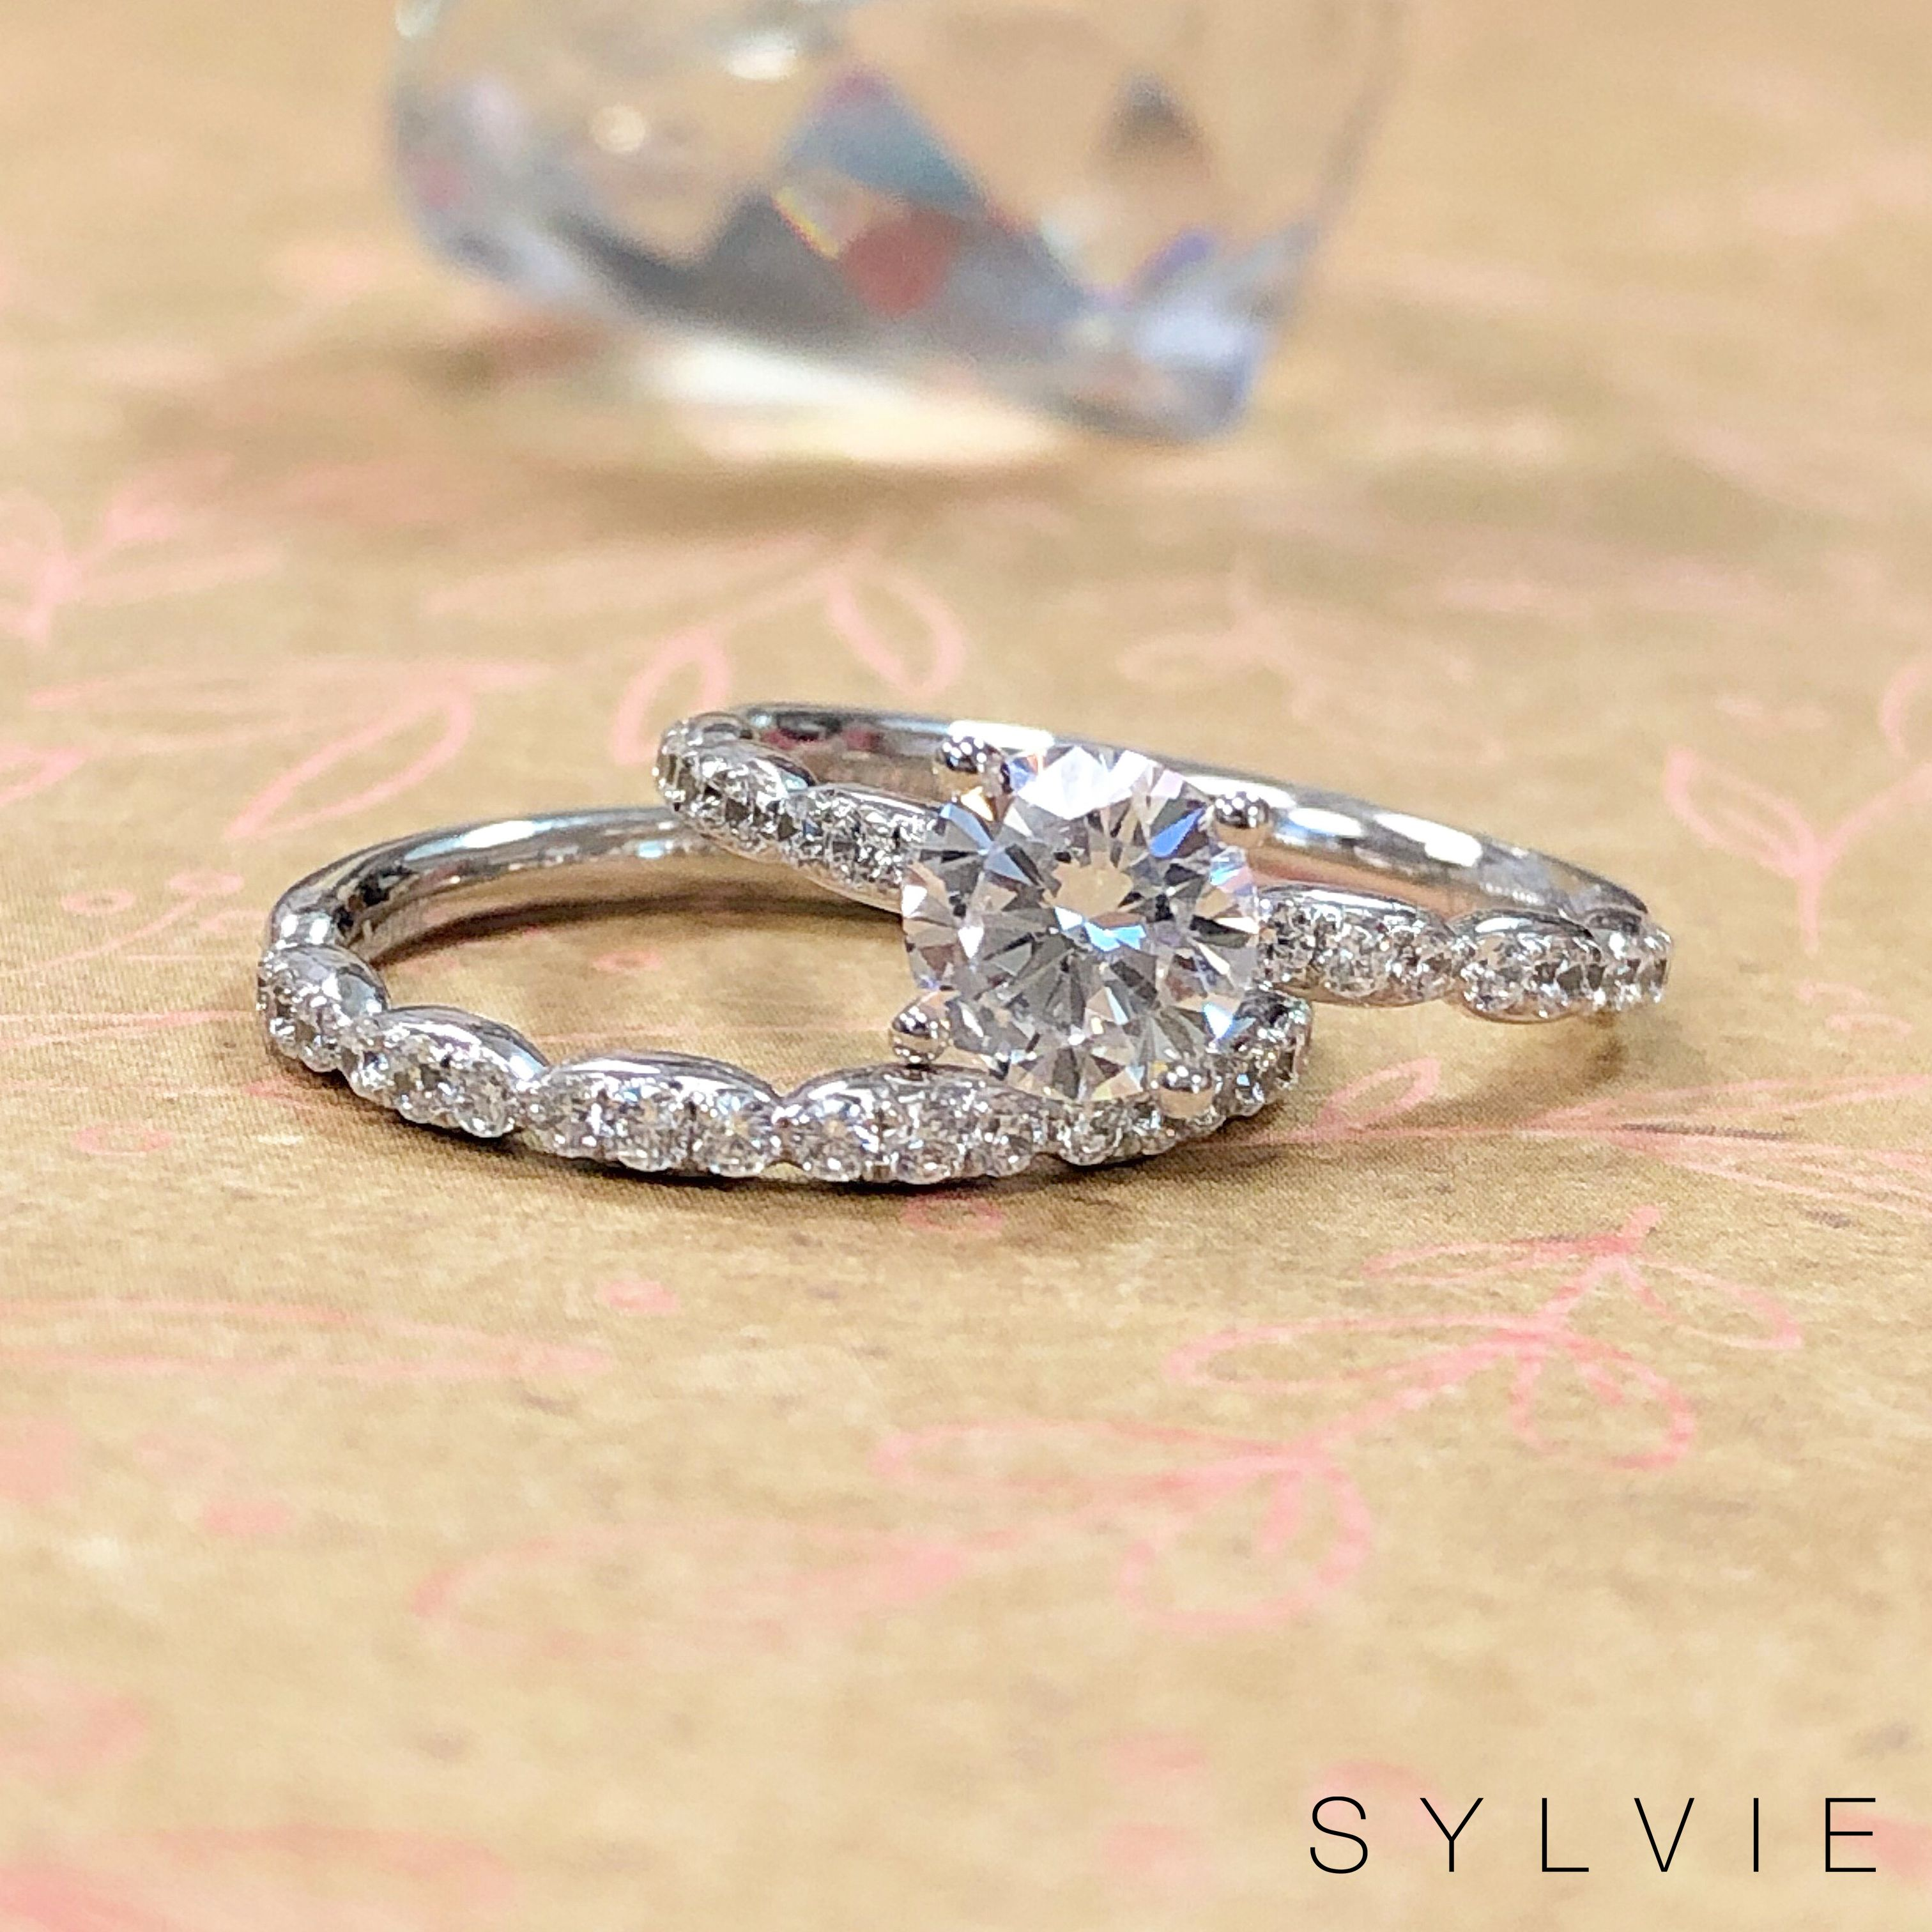 Solitaire Engagement Ring Wedding Set Wedding Bands Sylvie Collection S1797 Bs1797 Sylvie Engagement Rings Engagement Rings Wedding Ring Bands